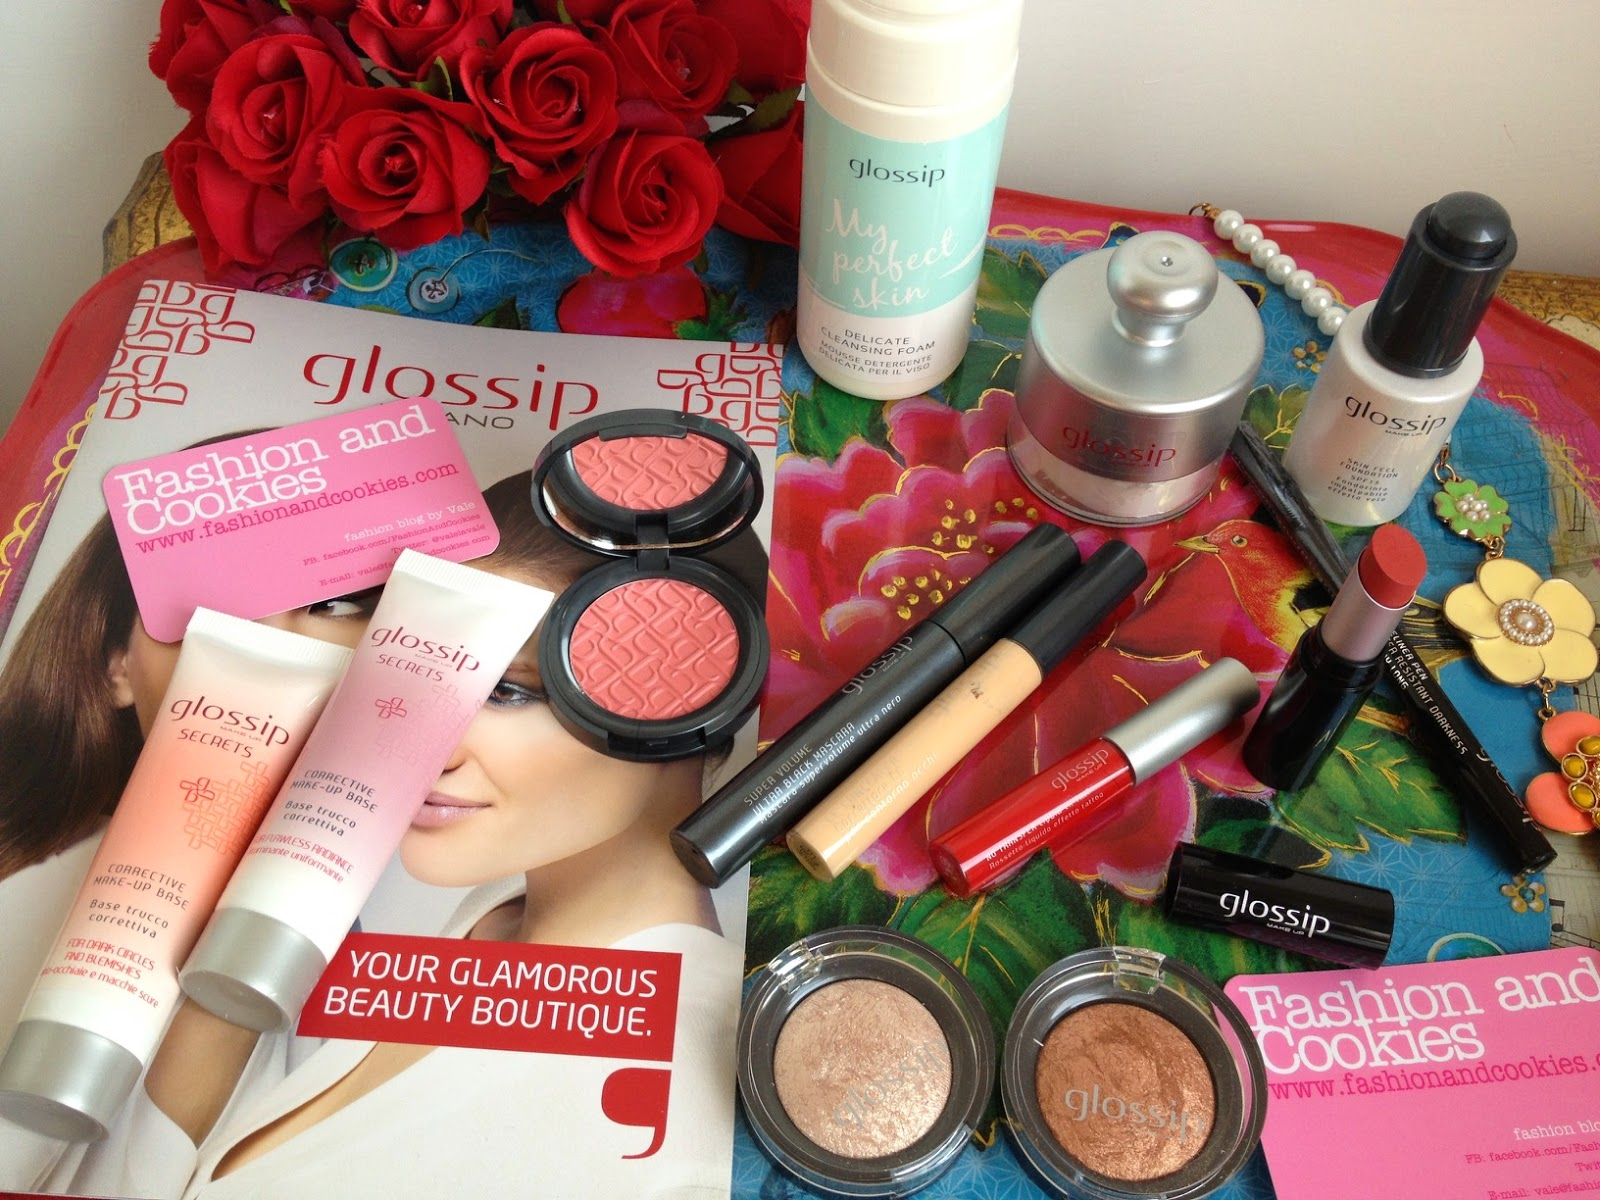 Glossip Milano make-up haul, Glossip haul, italian brand, trucco, beauty, Fashion and Cookies fashion blog